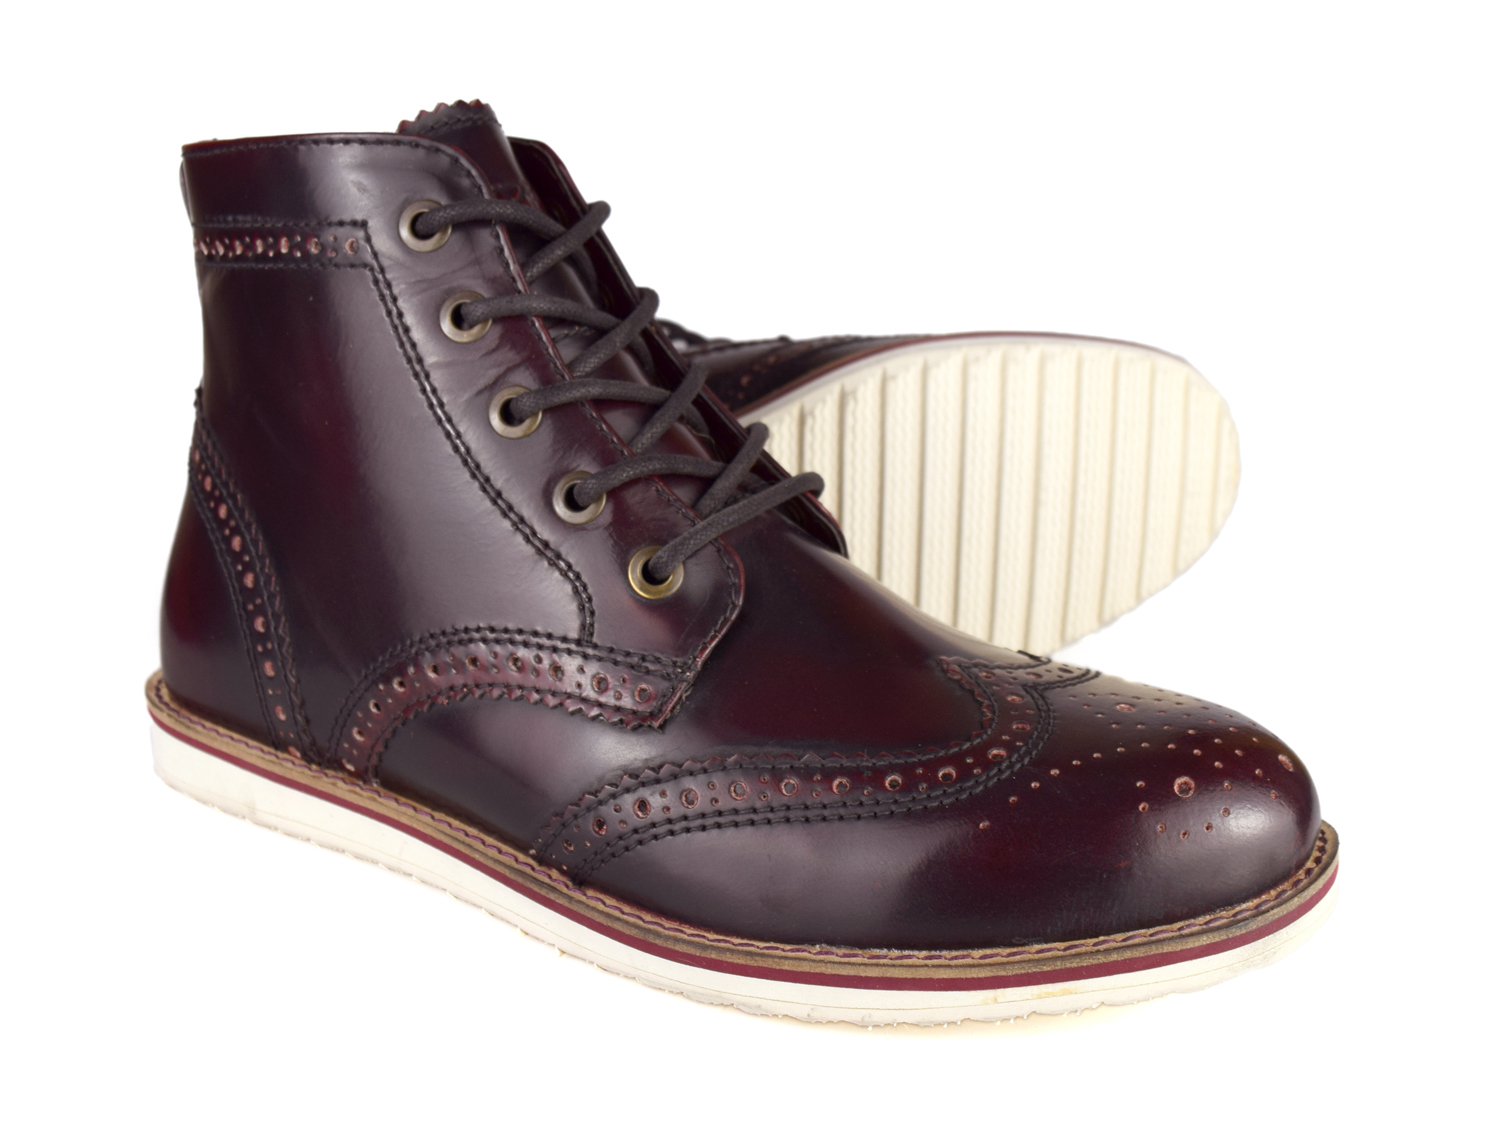 Red Tape Carrick Men's Oxblood Leather Chukka Boots | eBay